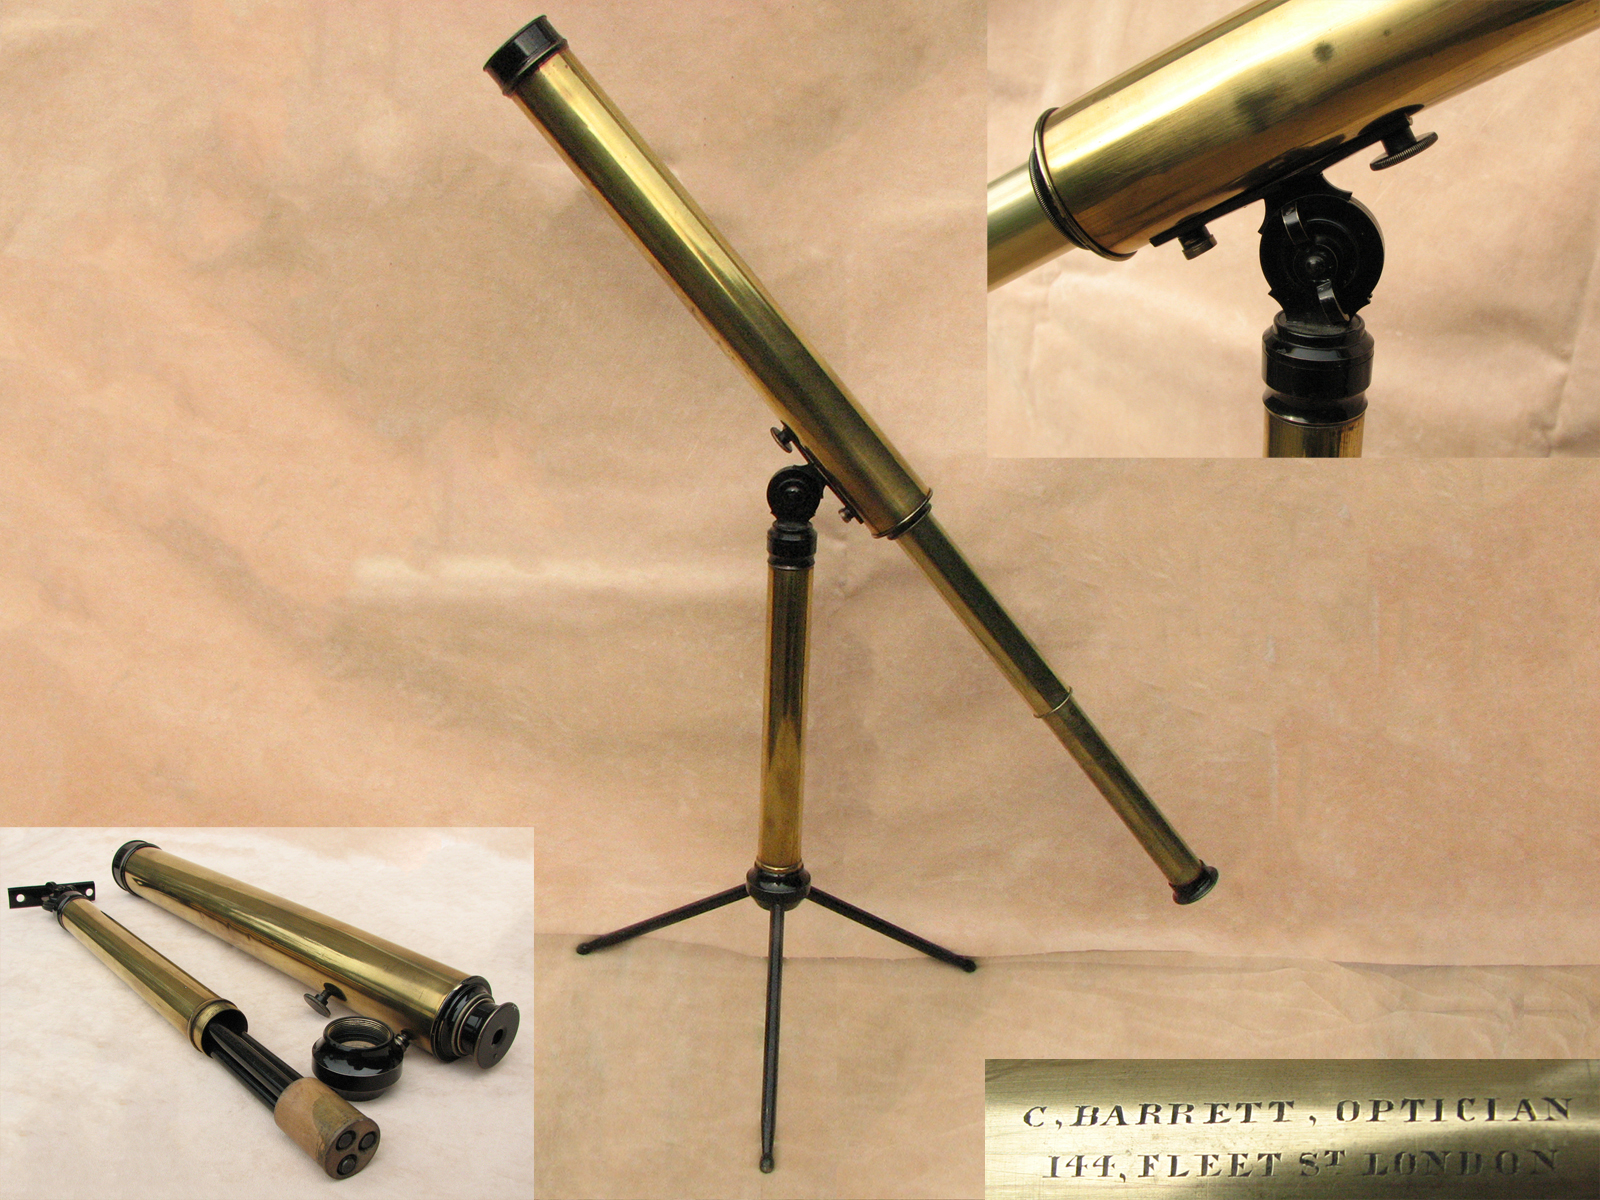 Classic Victorian table top telescope on stand, signed C Barrett, 144 Fleet Street, London.